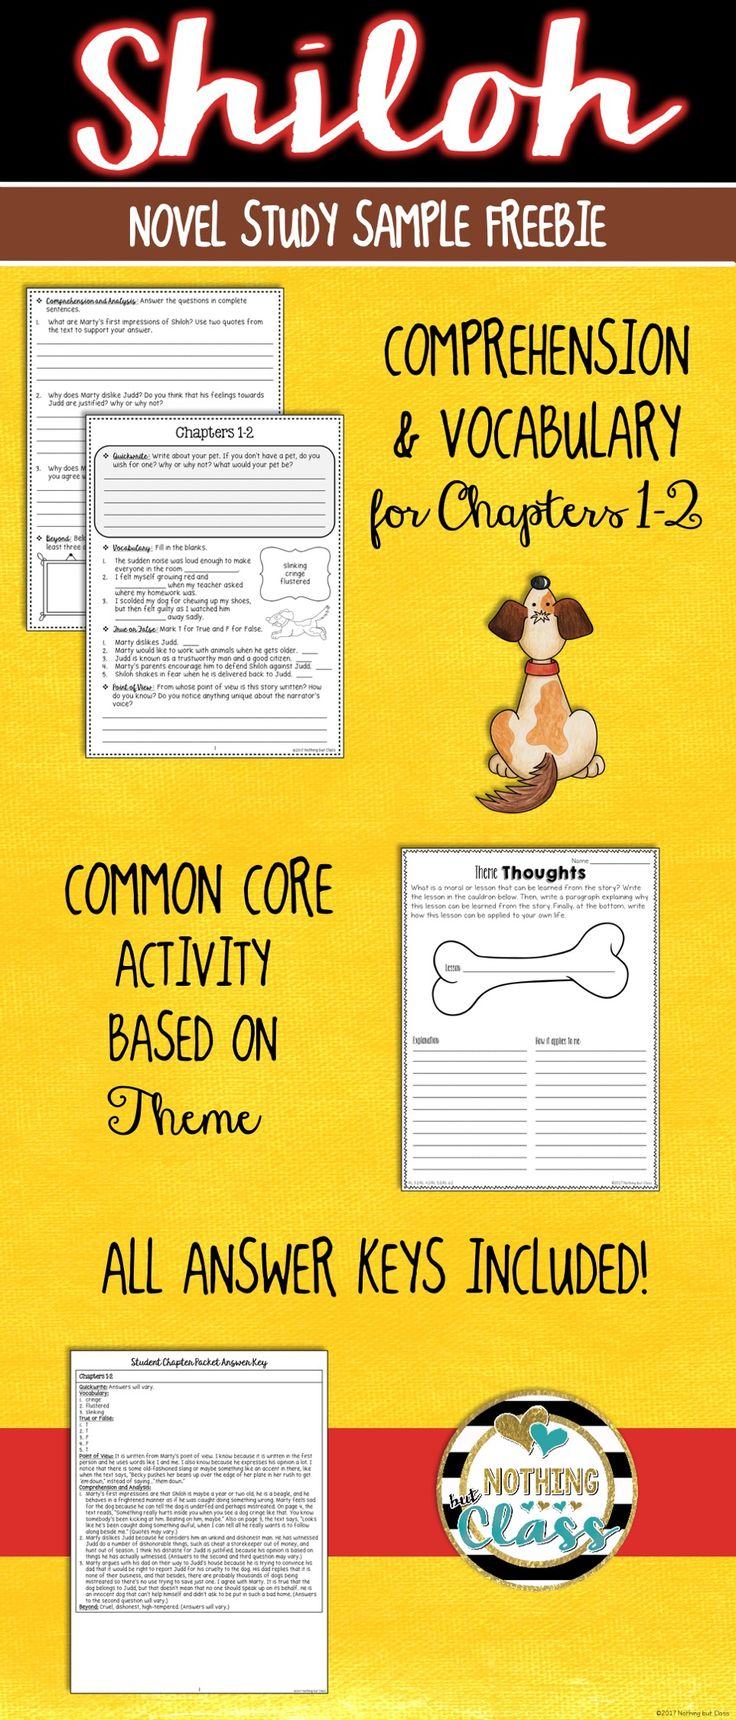 This is a 5 page FREE sample of my Common Core aligned book study for Shiloh